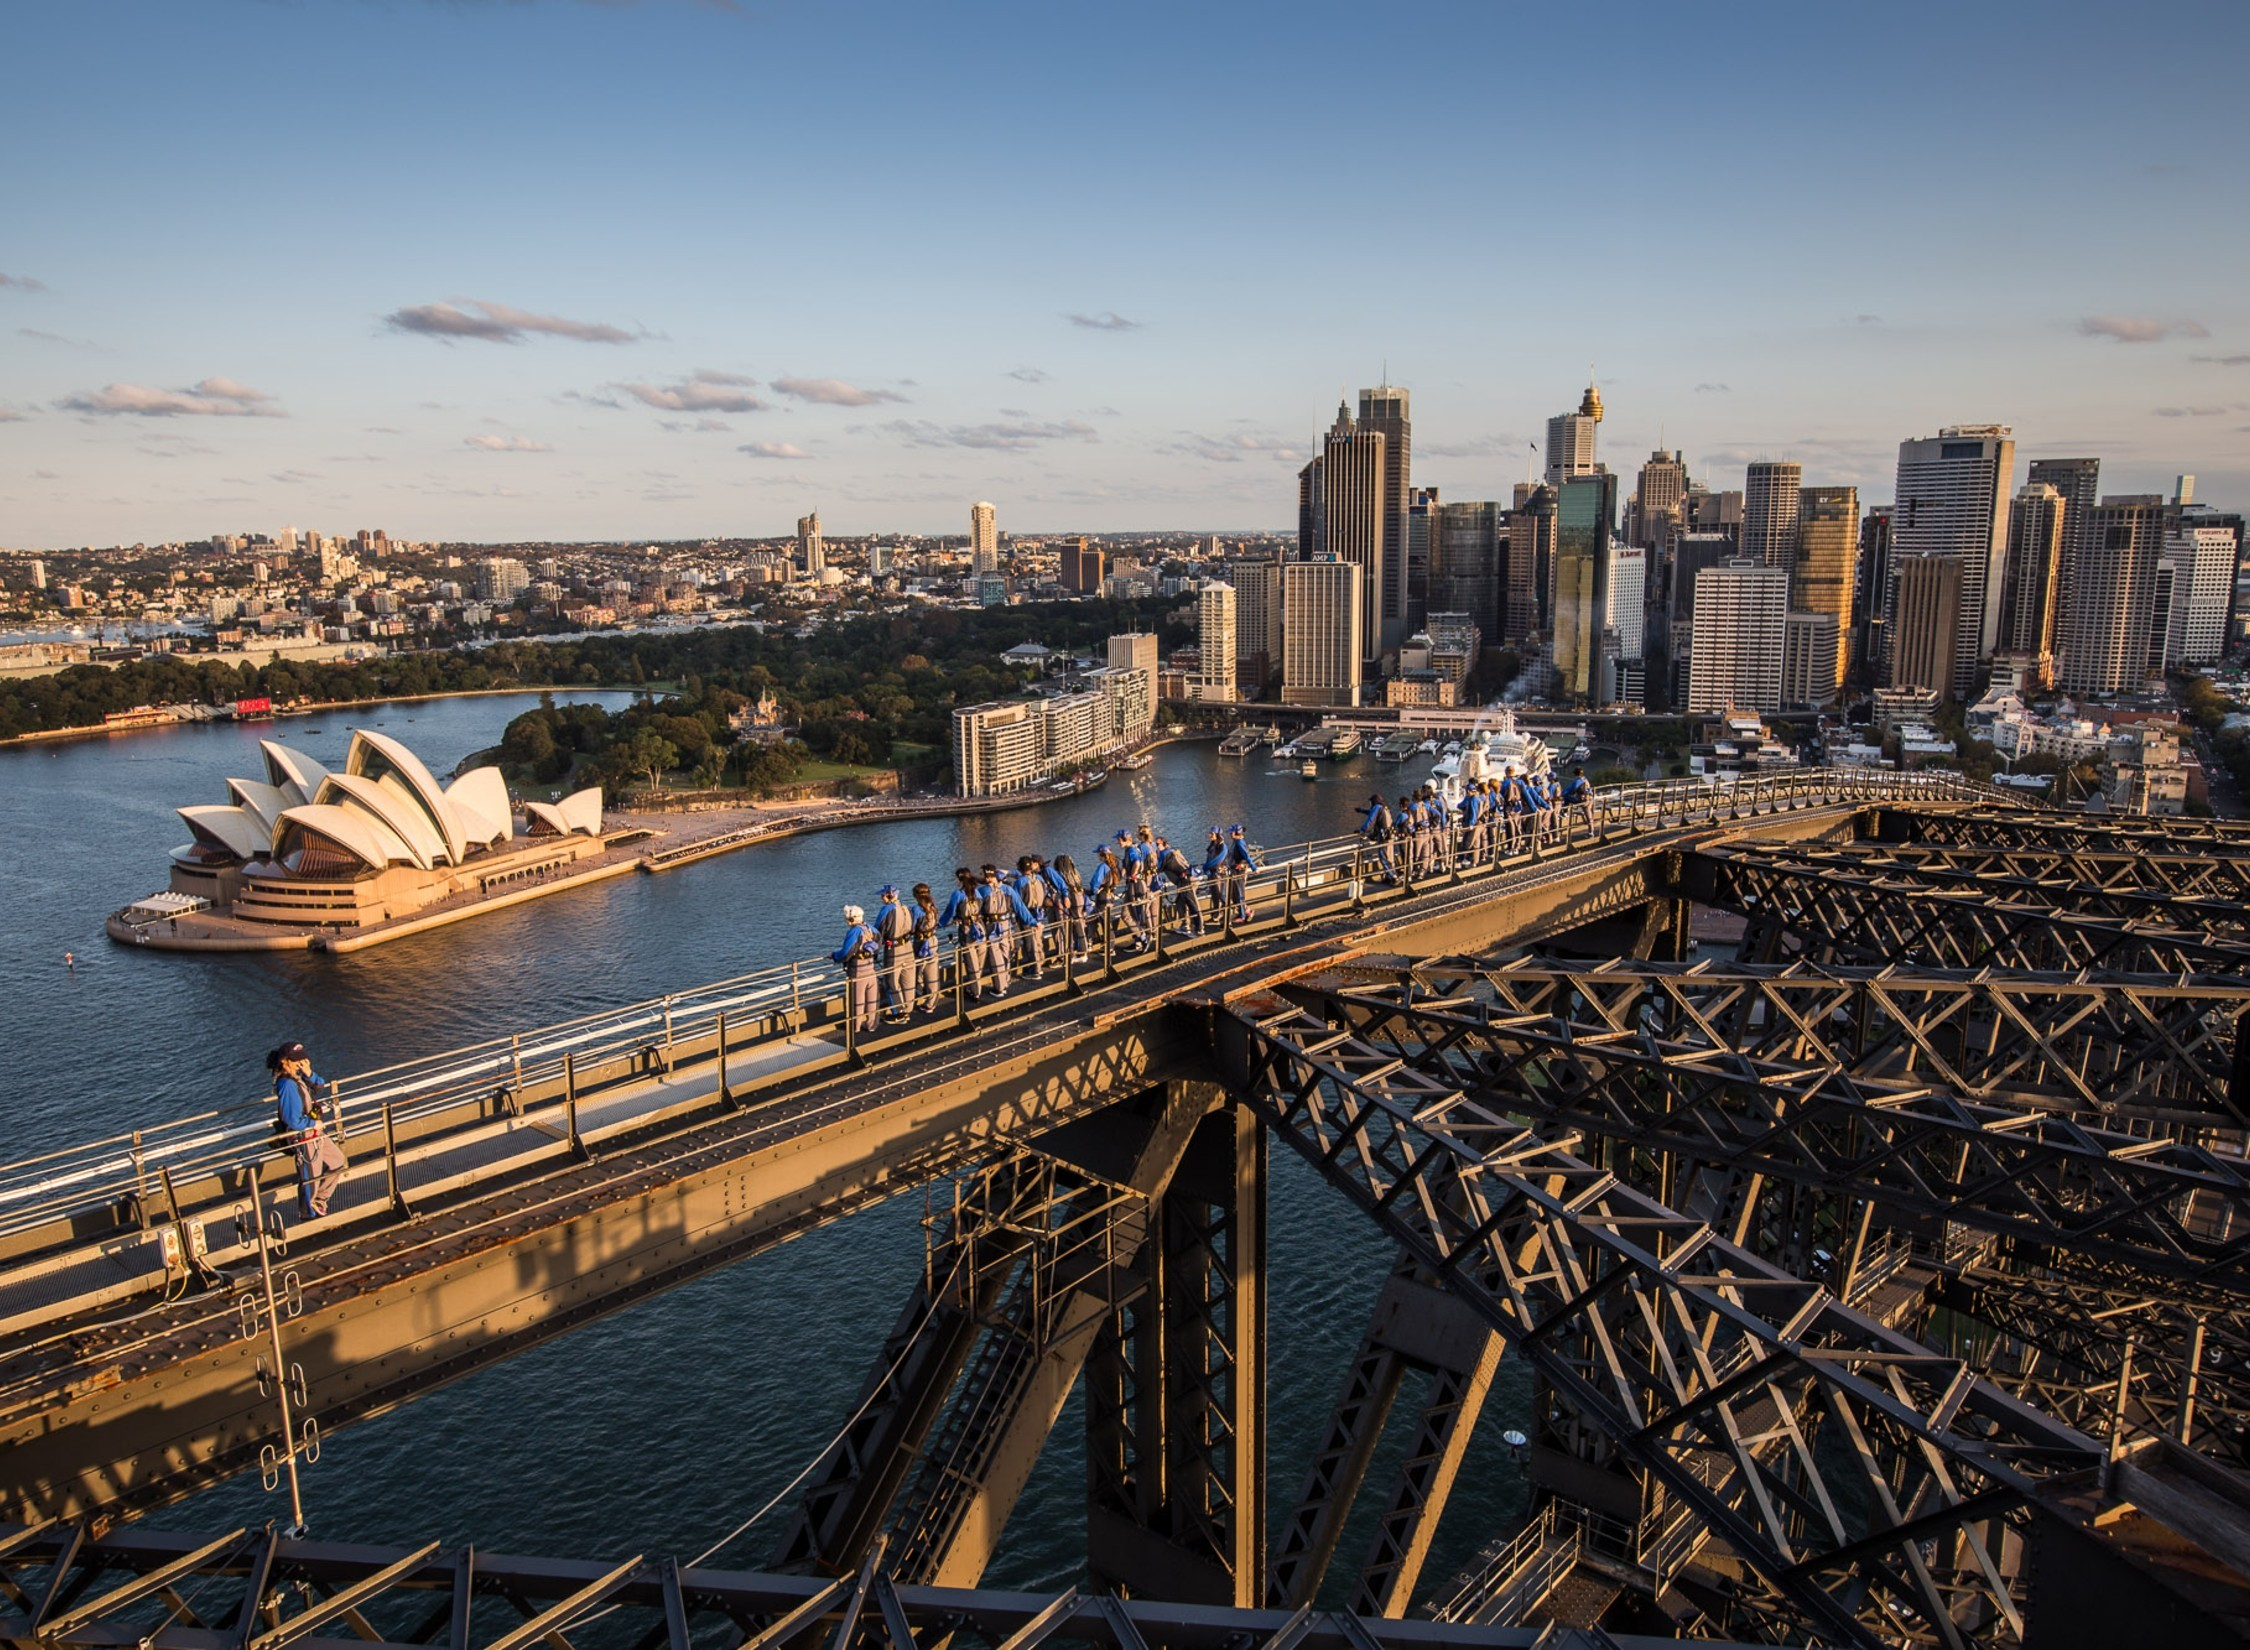 You can watch a music gig on top of the Sydney Harbour Bridge next week